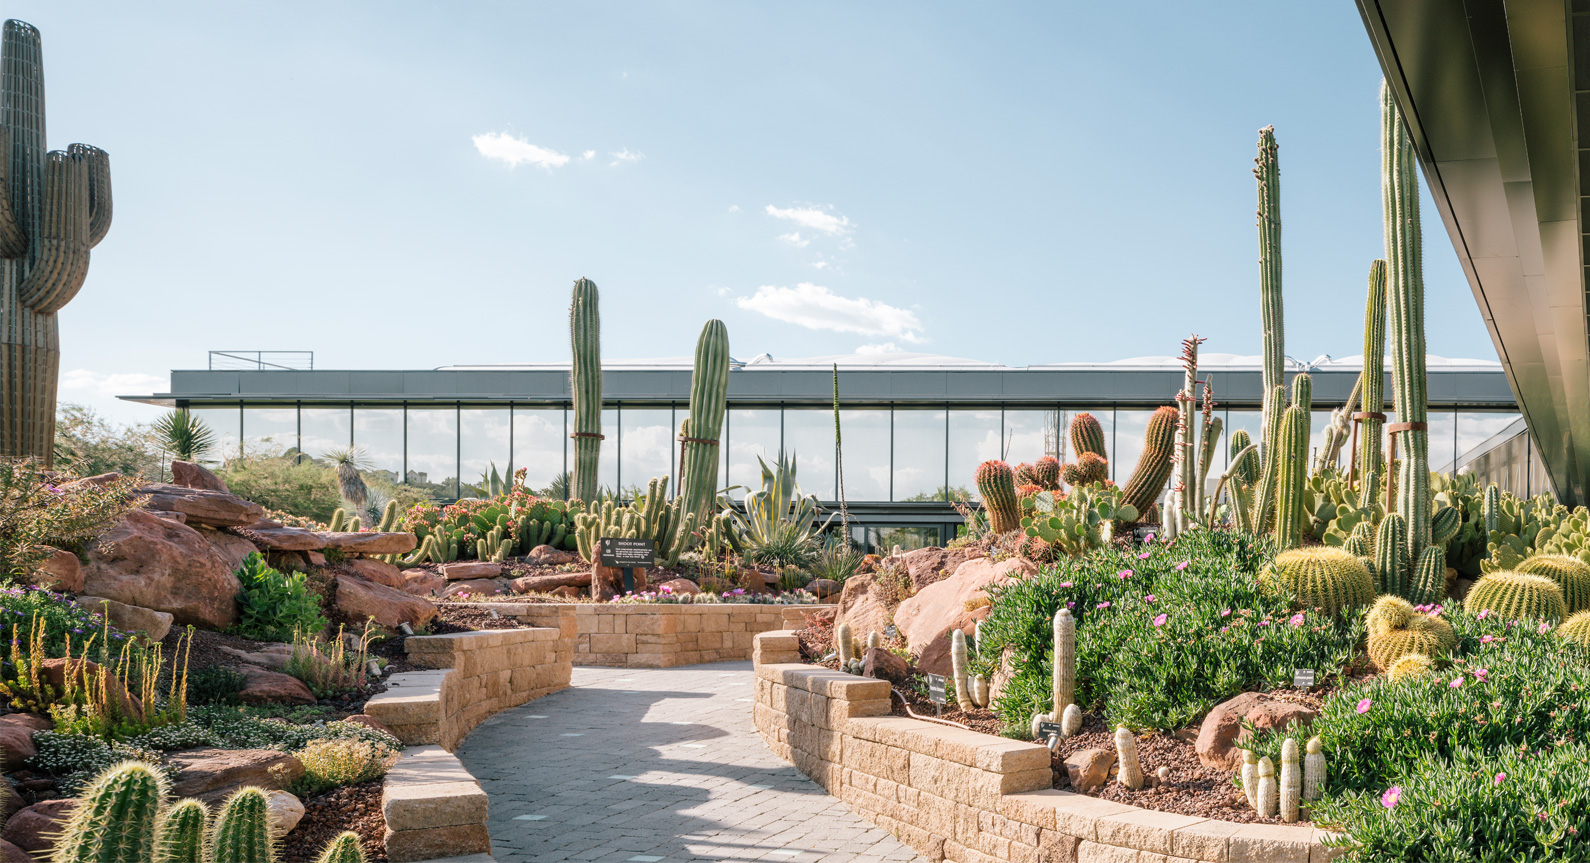 Madrid's Spectacular Desert City Complex Celebrates All Things Cacti